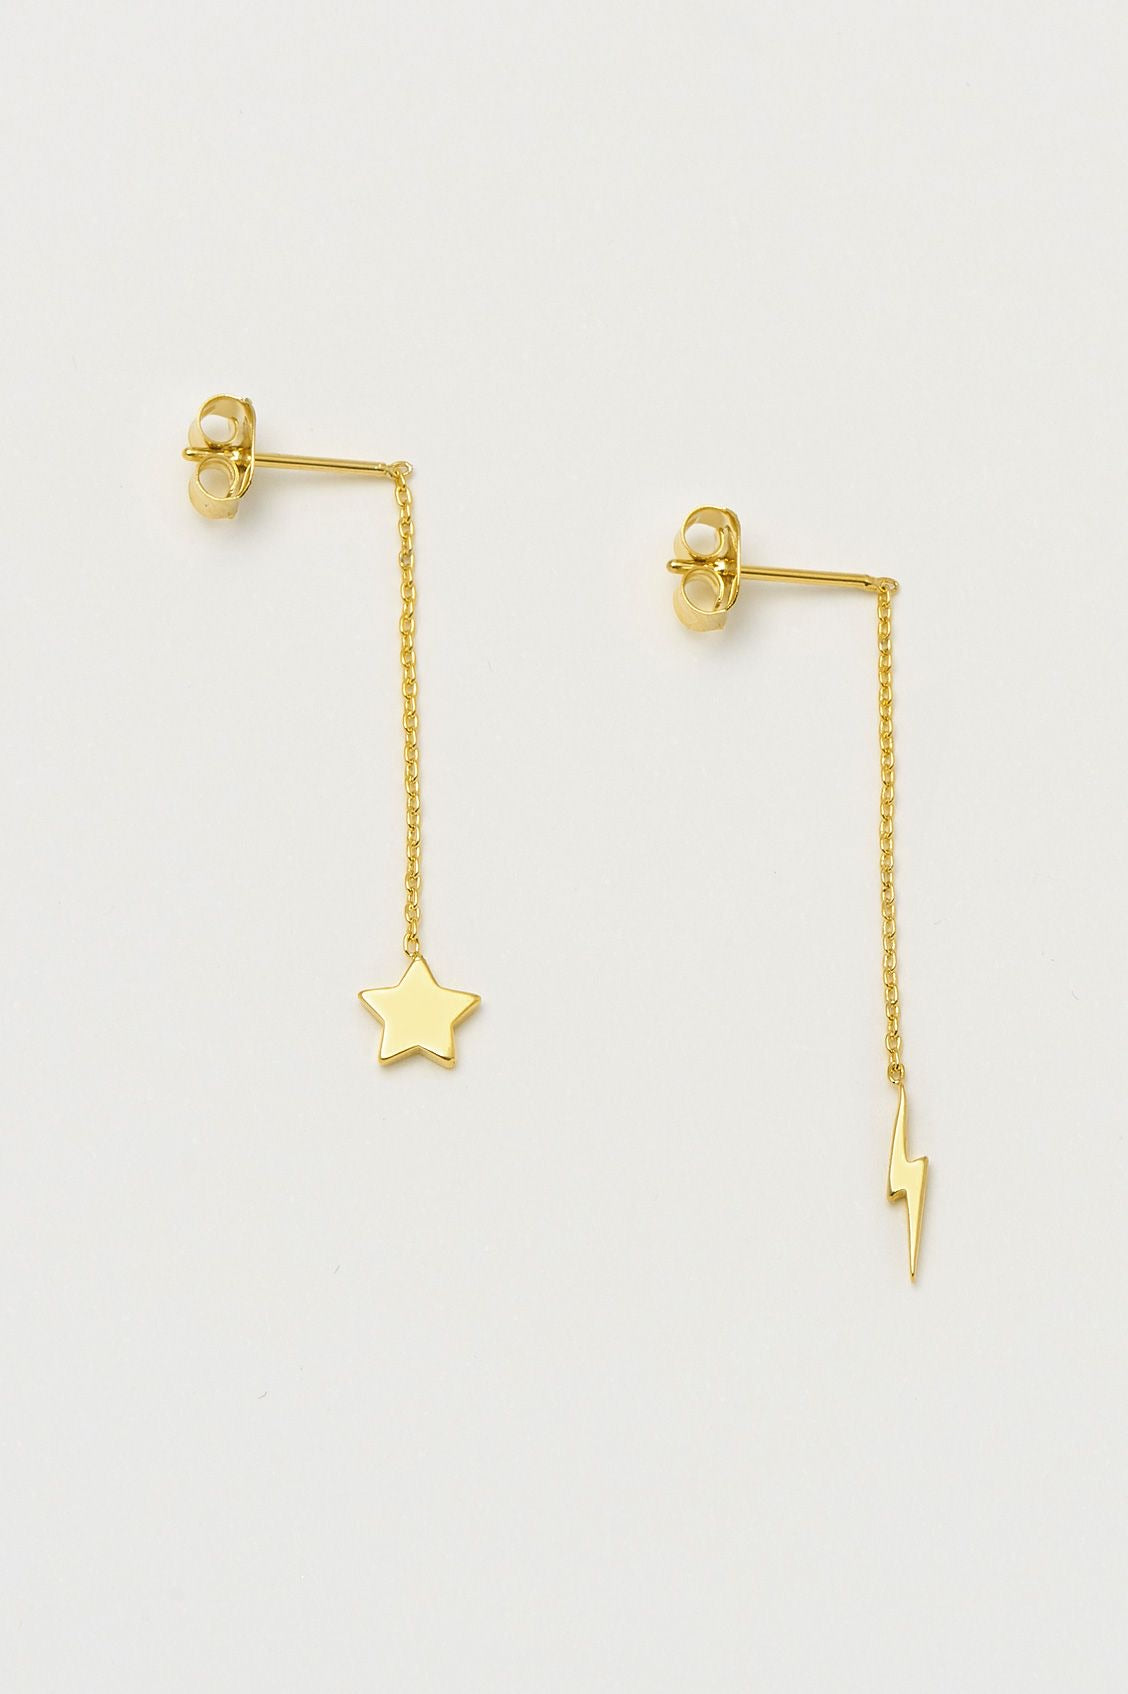 Star and lightening bolt earrings